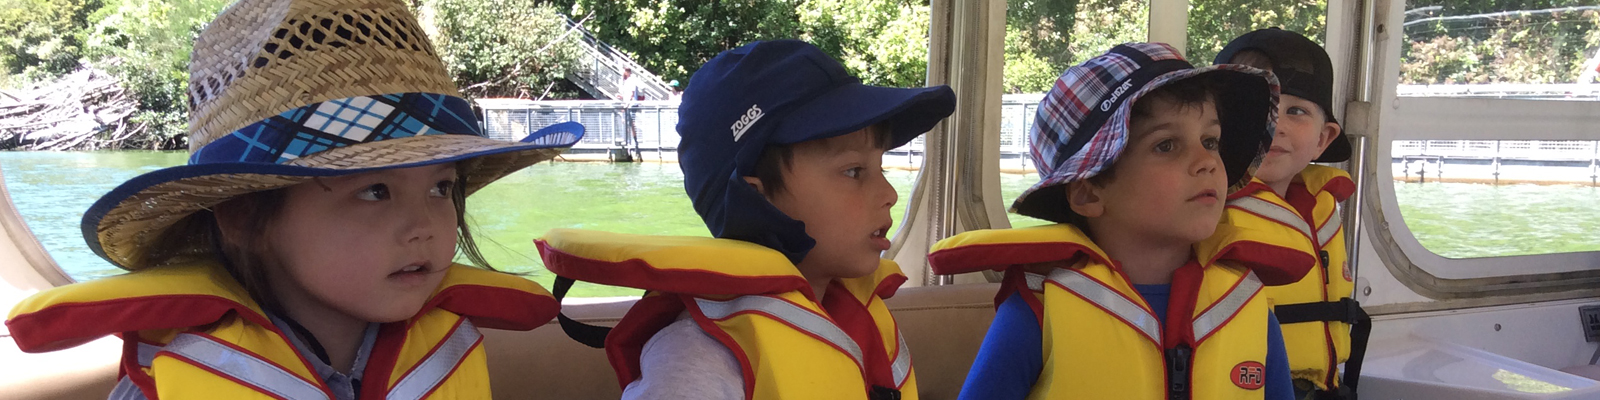 Kids on the ZEALANDIA boat